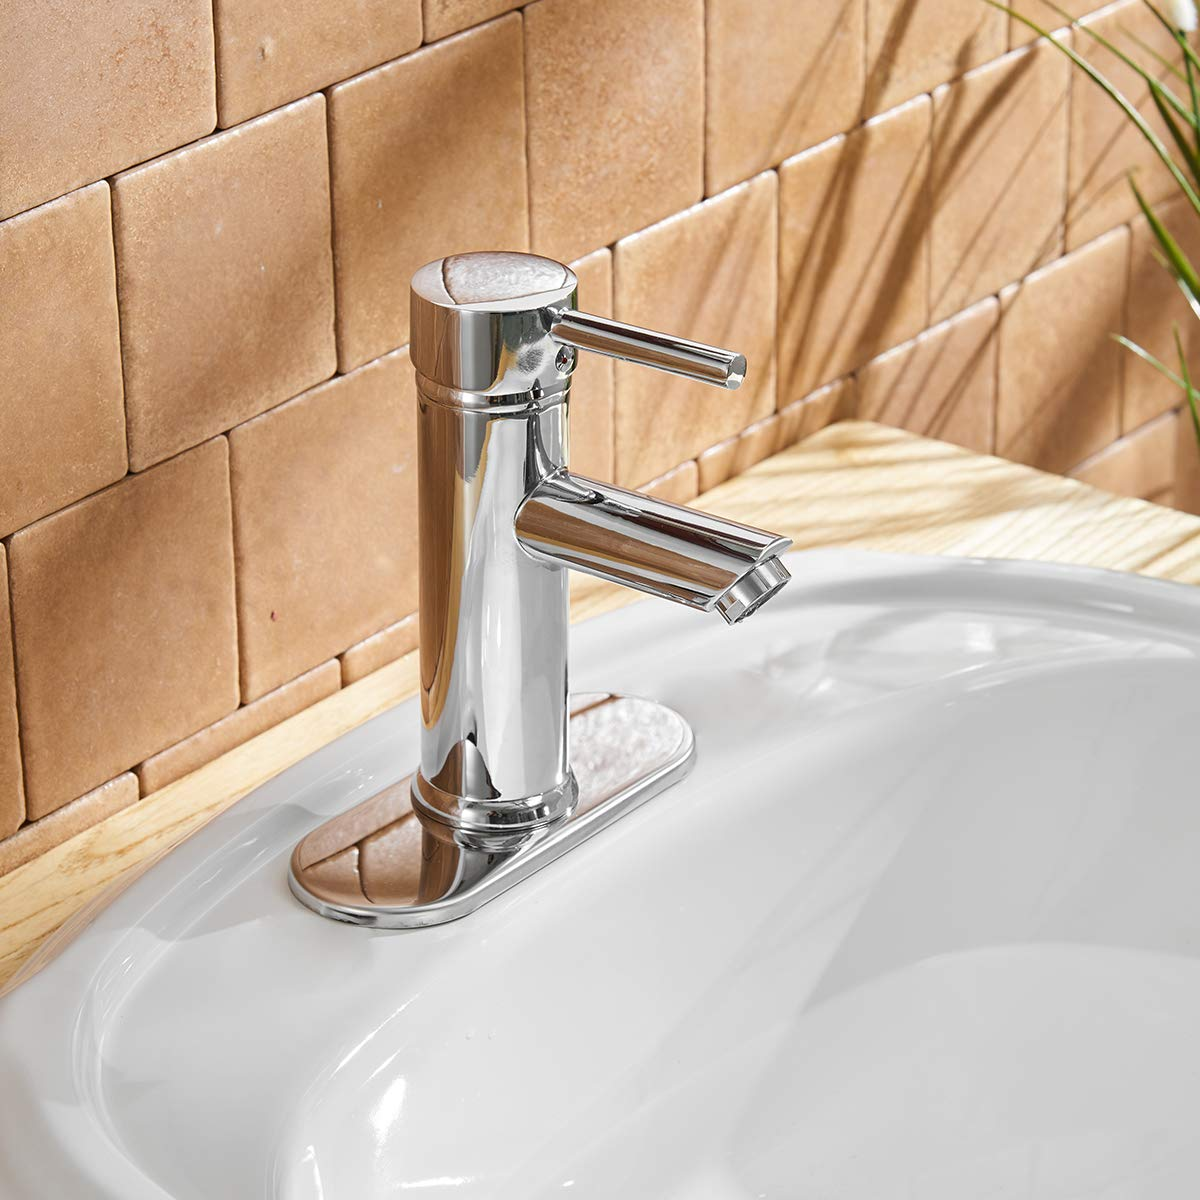 Greenspring Commercial Single Handle Bathroom Sink Faucet One Hole Deck Mount Lavatory Faucet Stainless Steel ,Chrome Finish